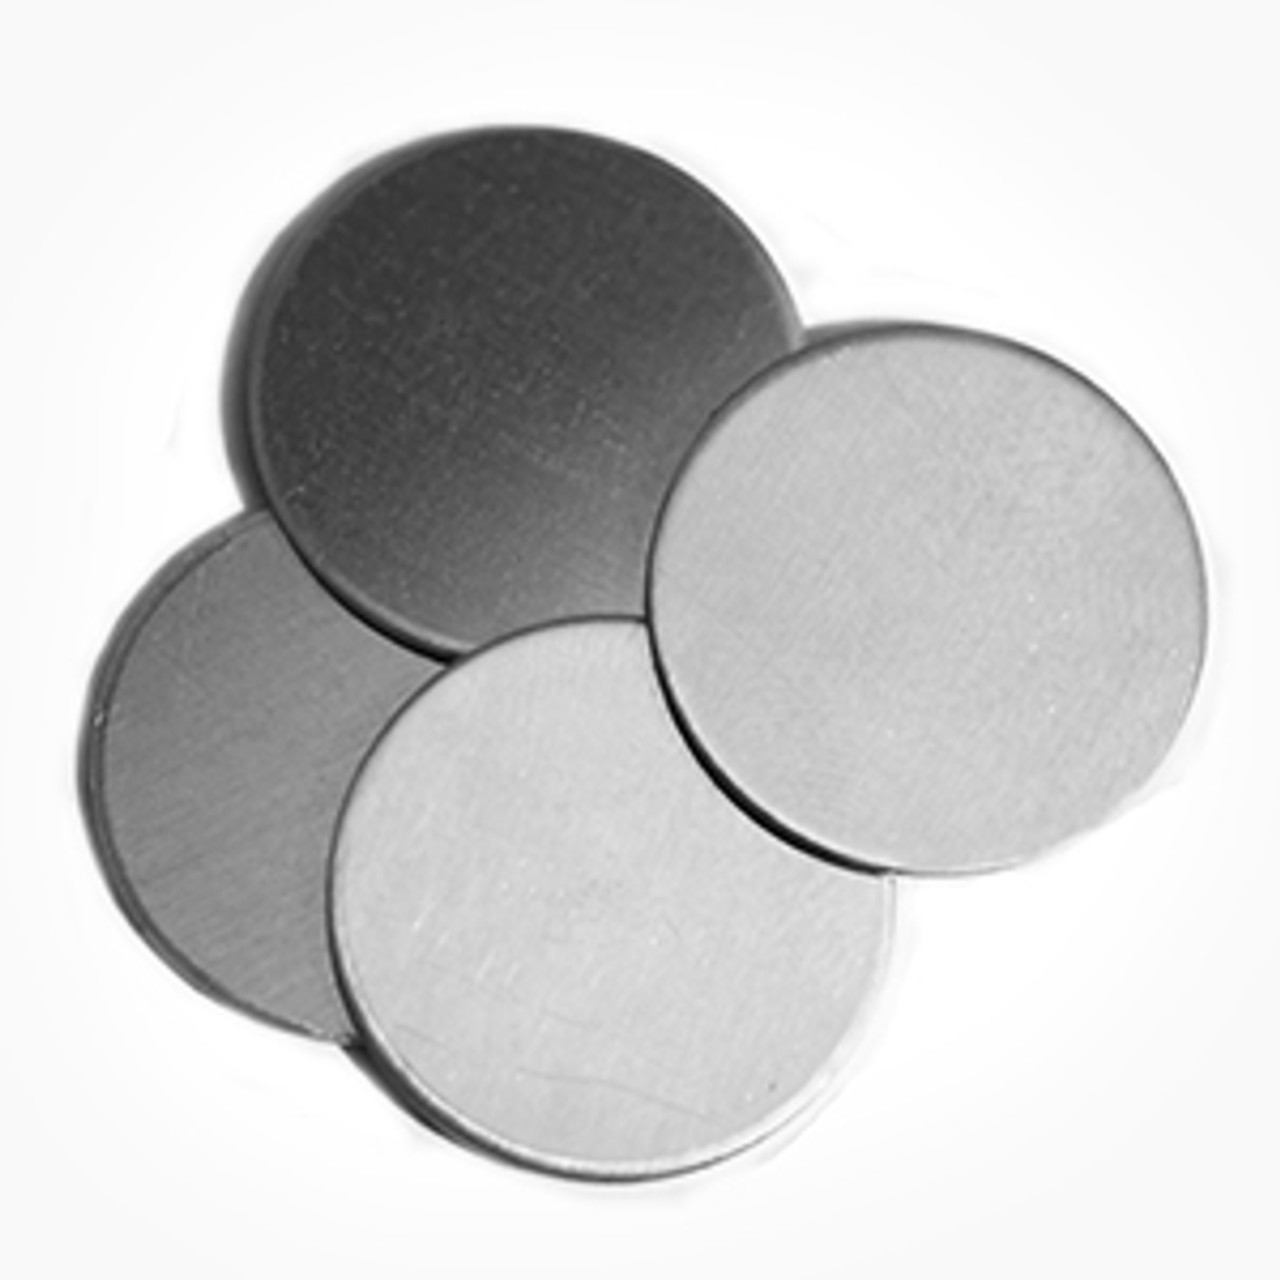 Aluminium Disc, 14.5mm - Pack of 10 (650-AL)